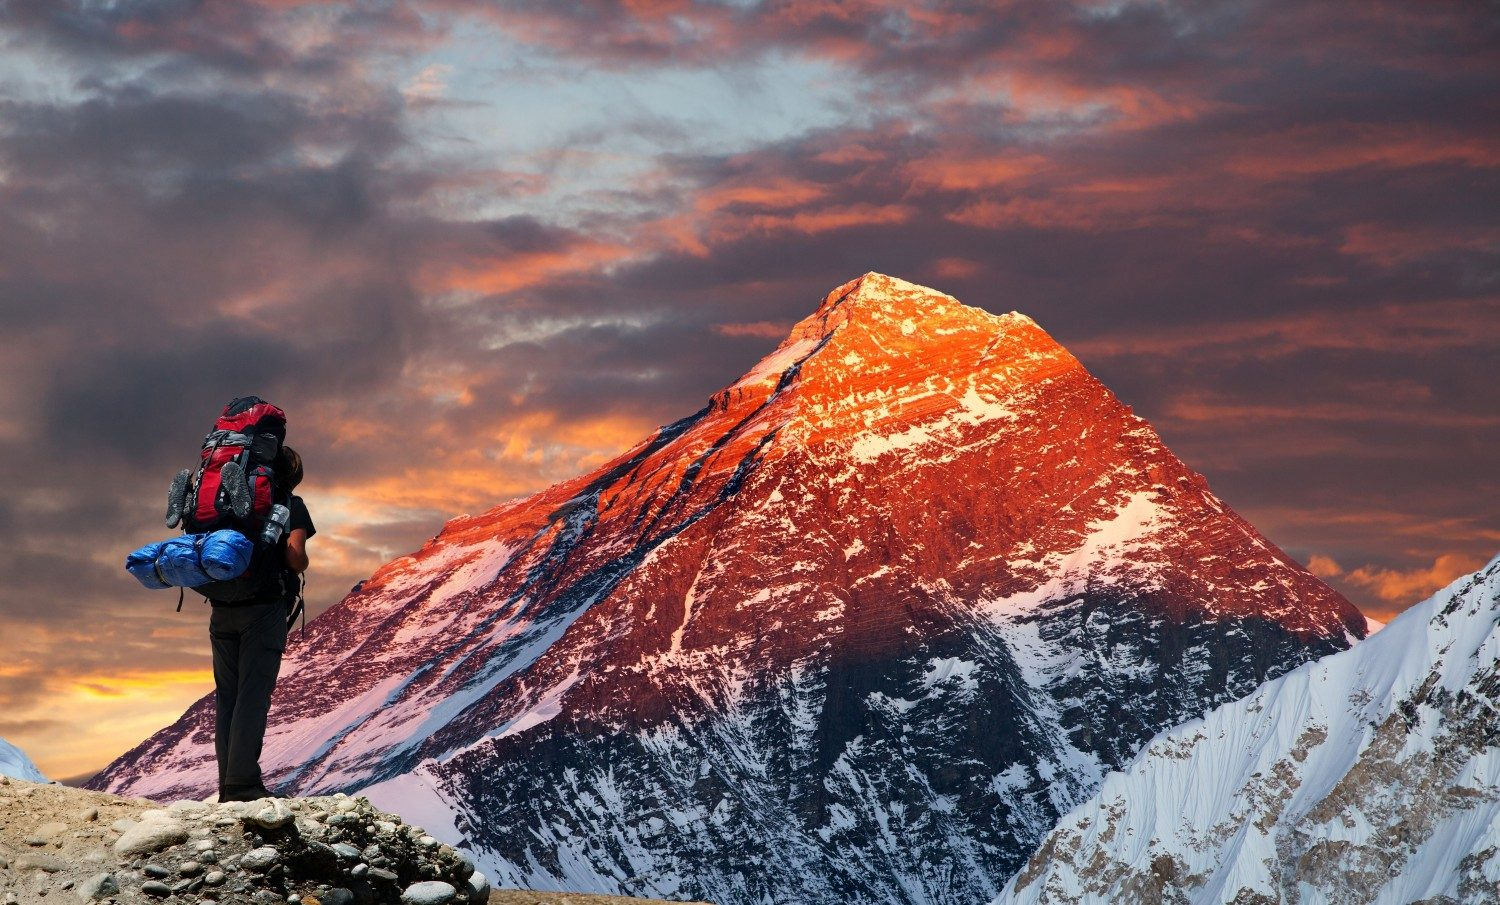 How hard is it to climb Mount Everest. The highest mountain in the world